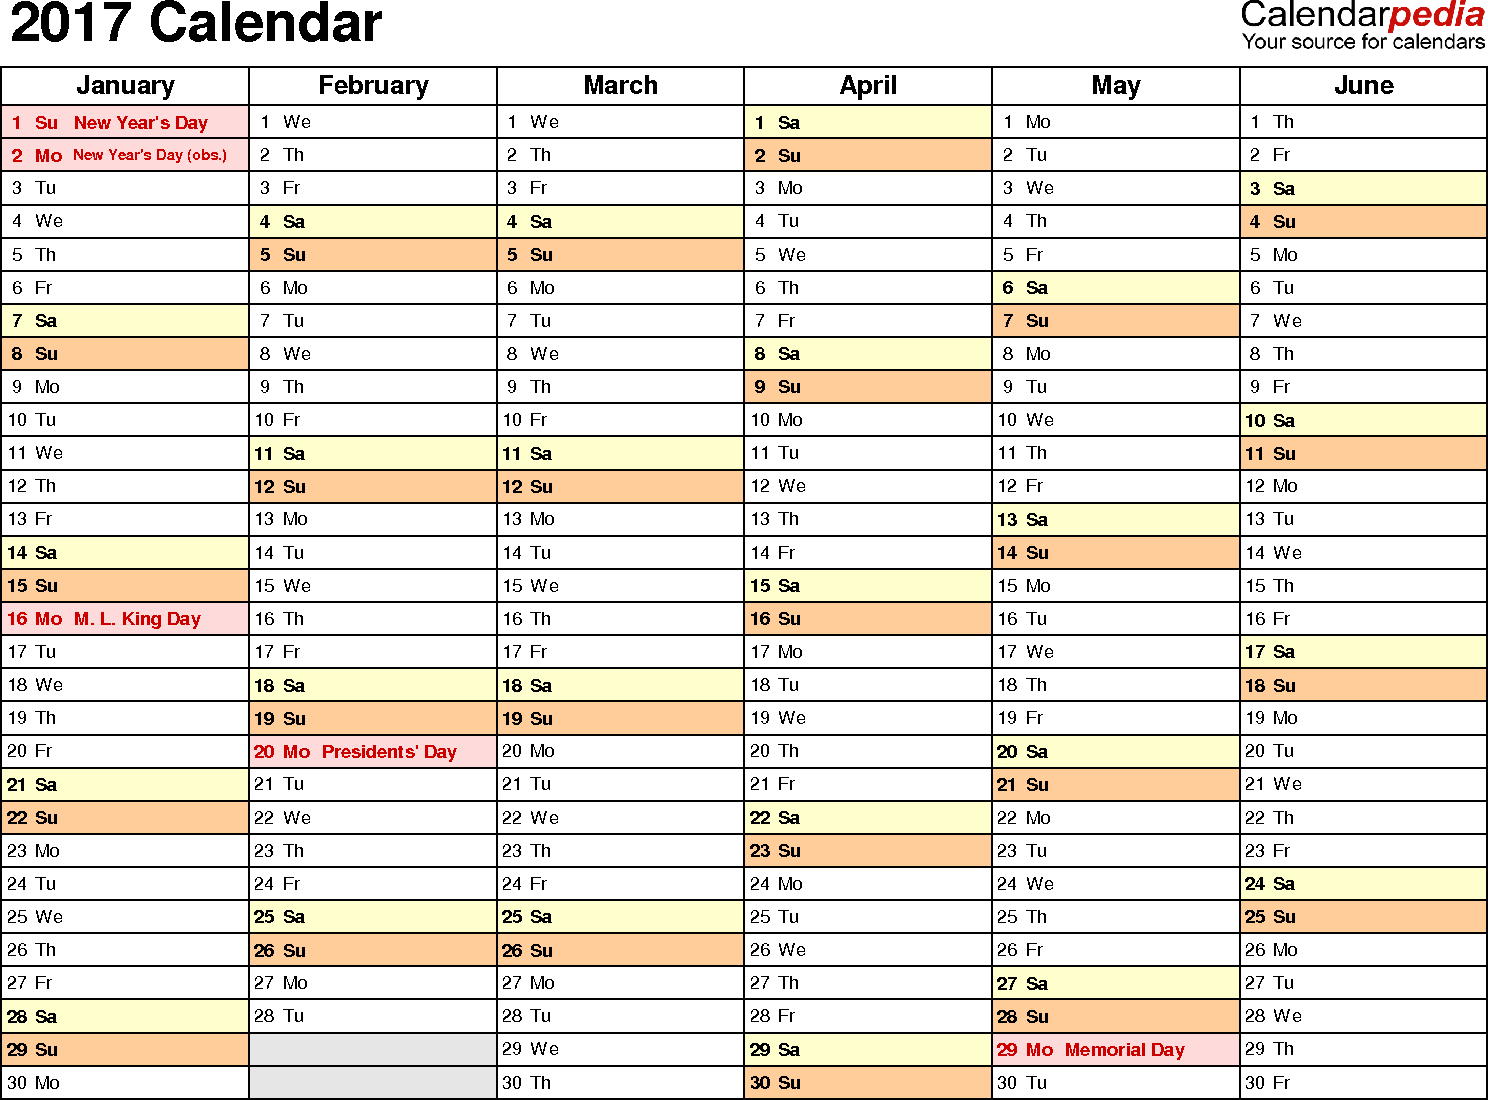 Ediblewildsus  Terrific  Calendar  Download  Free Printable Excel Templates Xls With Great Template   Calendar For Excel Months Horizontally  Pages Landscape Orientation With Agreeable Count Command In Excel Also Excel Percentiles In Addition Excel Use Row Number In Formula And Custom Function Excel As Well As Excel Loop Through Cells Additionally Calculating P Values In Excel From Calendarpediacom With Ediblewildsus  Great  Calendar  Download  Free Printable Excel Templates Xls With Agreeable Template   Calendar For Excel Months Horizontally  Pages Landscape Orientation And Terrific Count Command In Excel Also Excel Percentiles In Addition Excel Use Row Number In Formula From Calendarpediacom